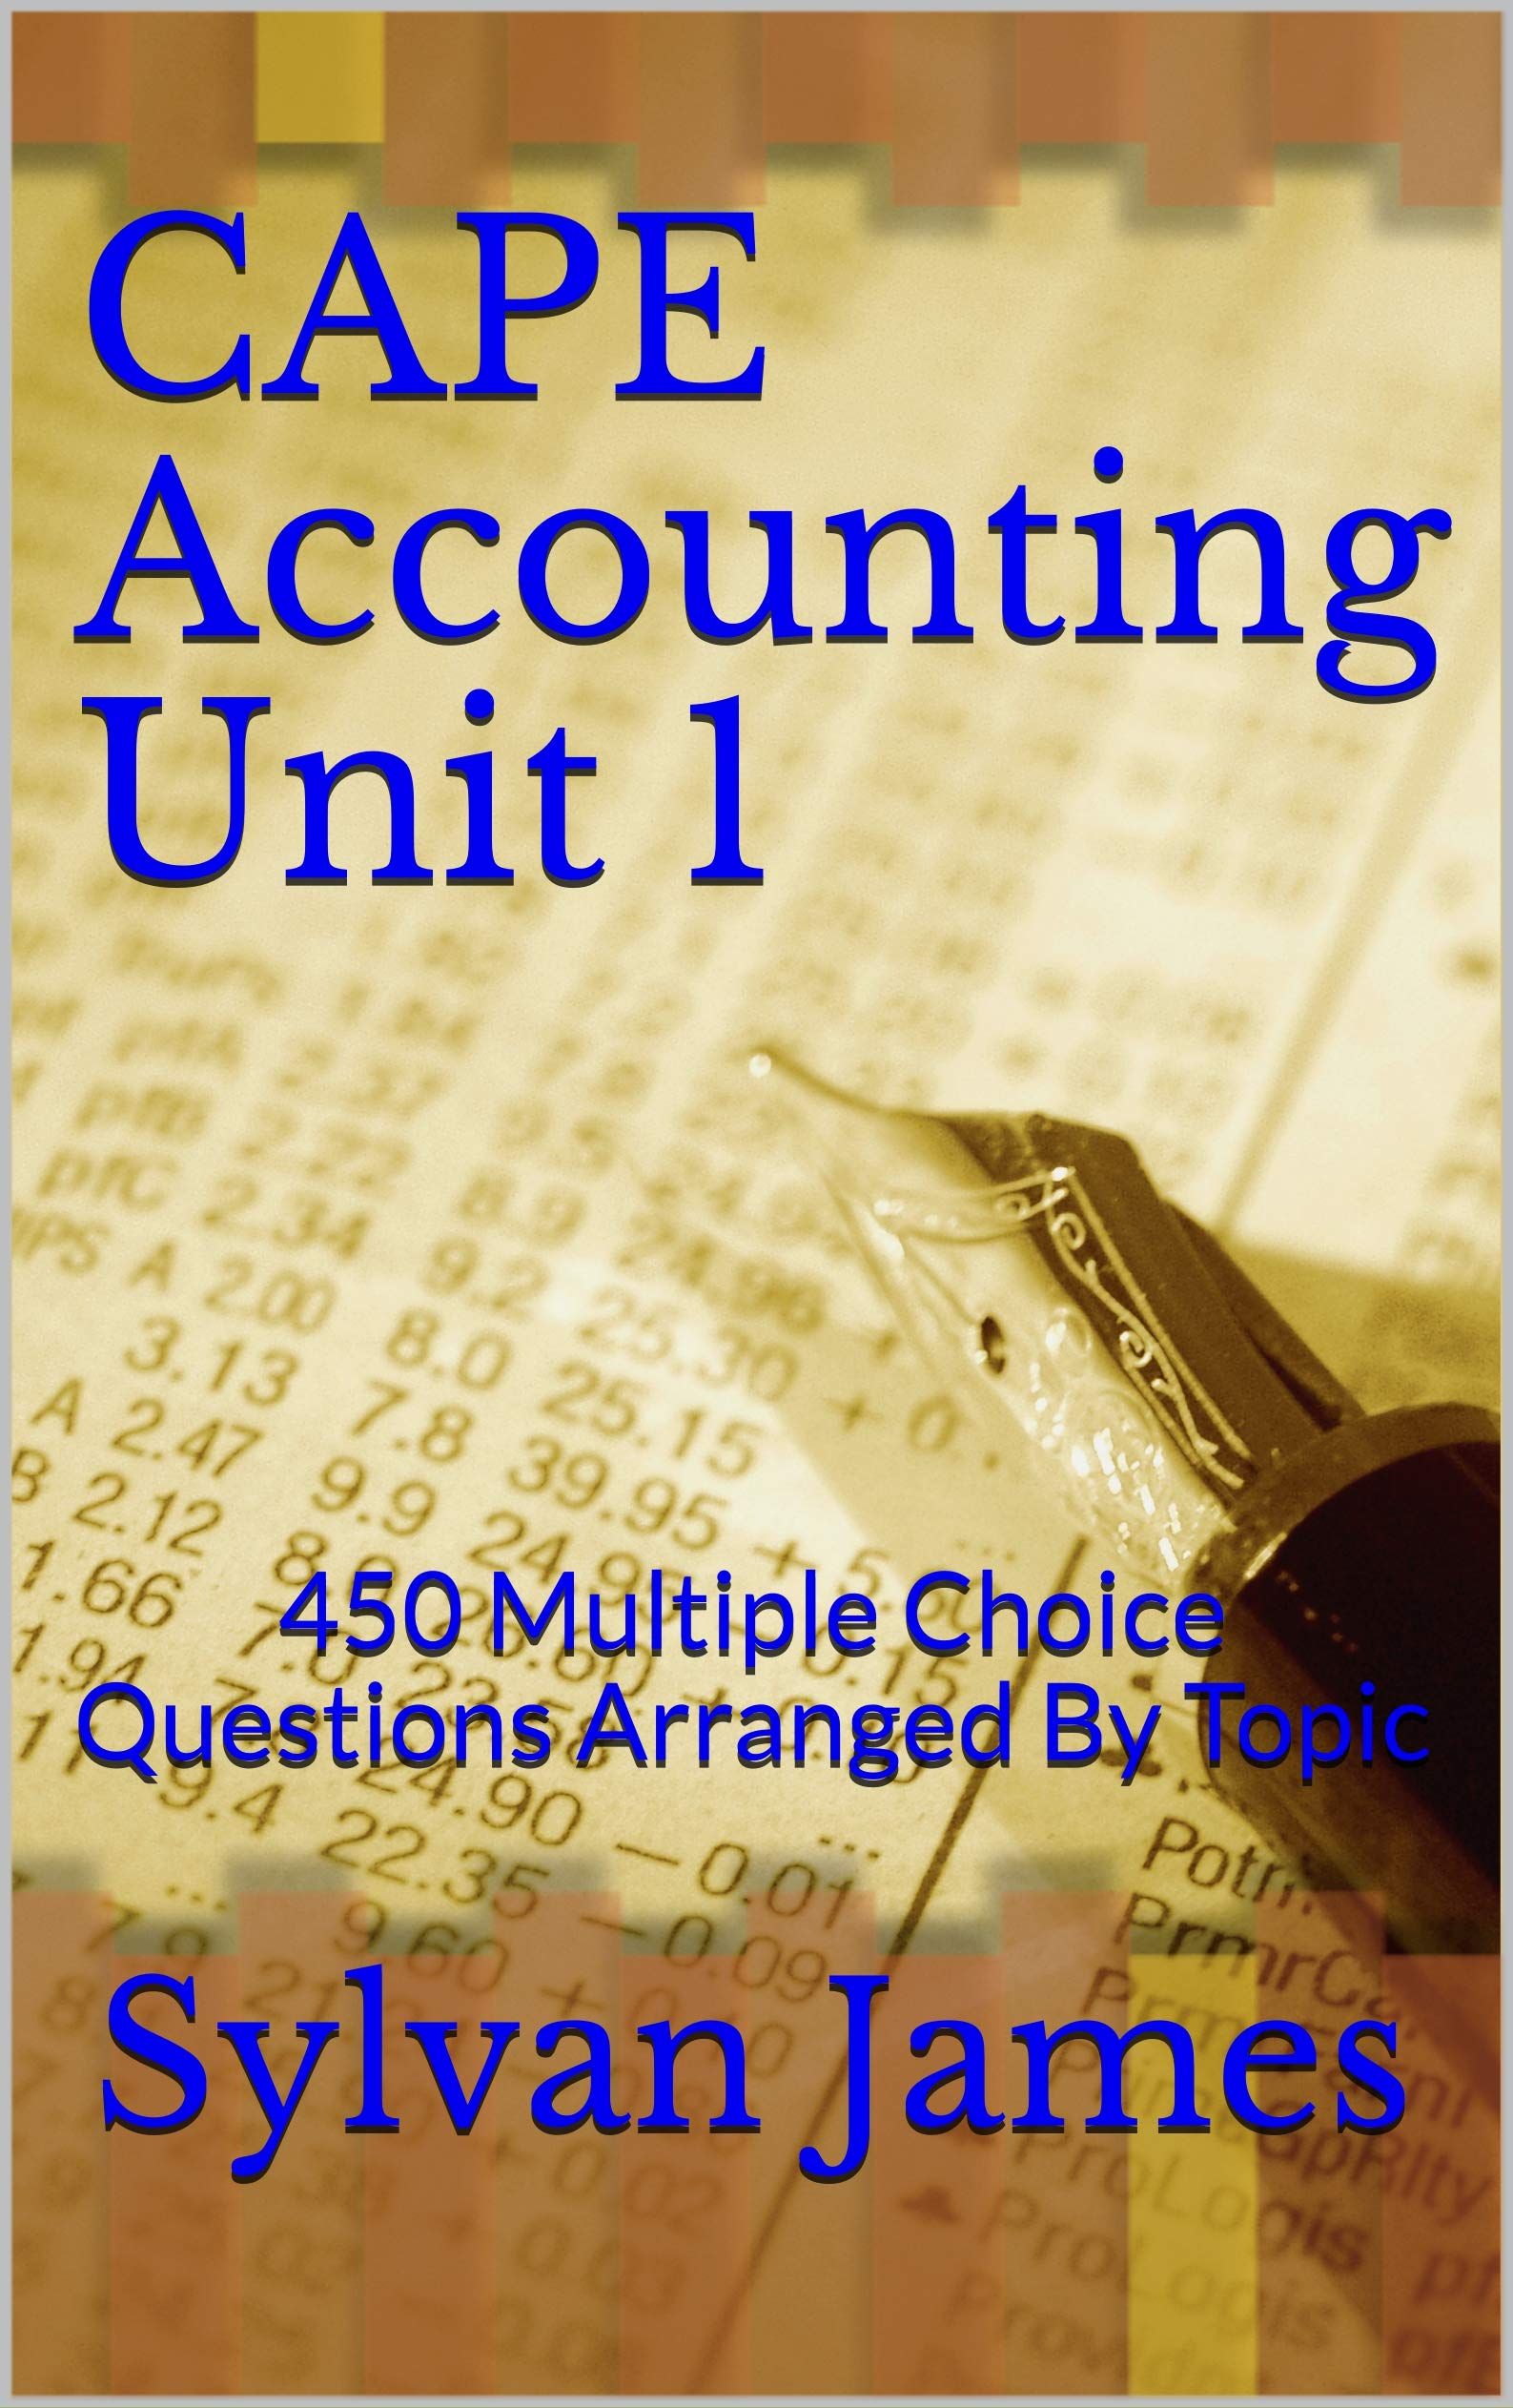 CAPE Accounting Unit 1: 450 Multiple Choice Questions Arranged By Topic